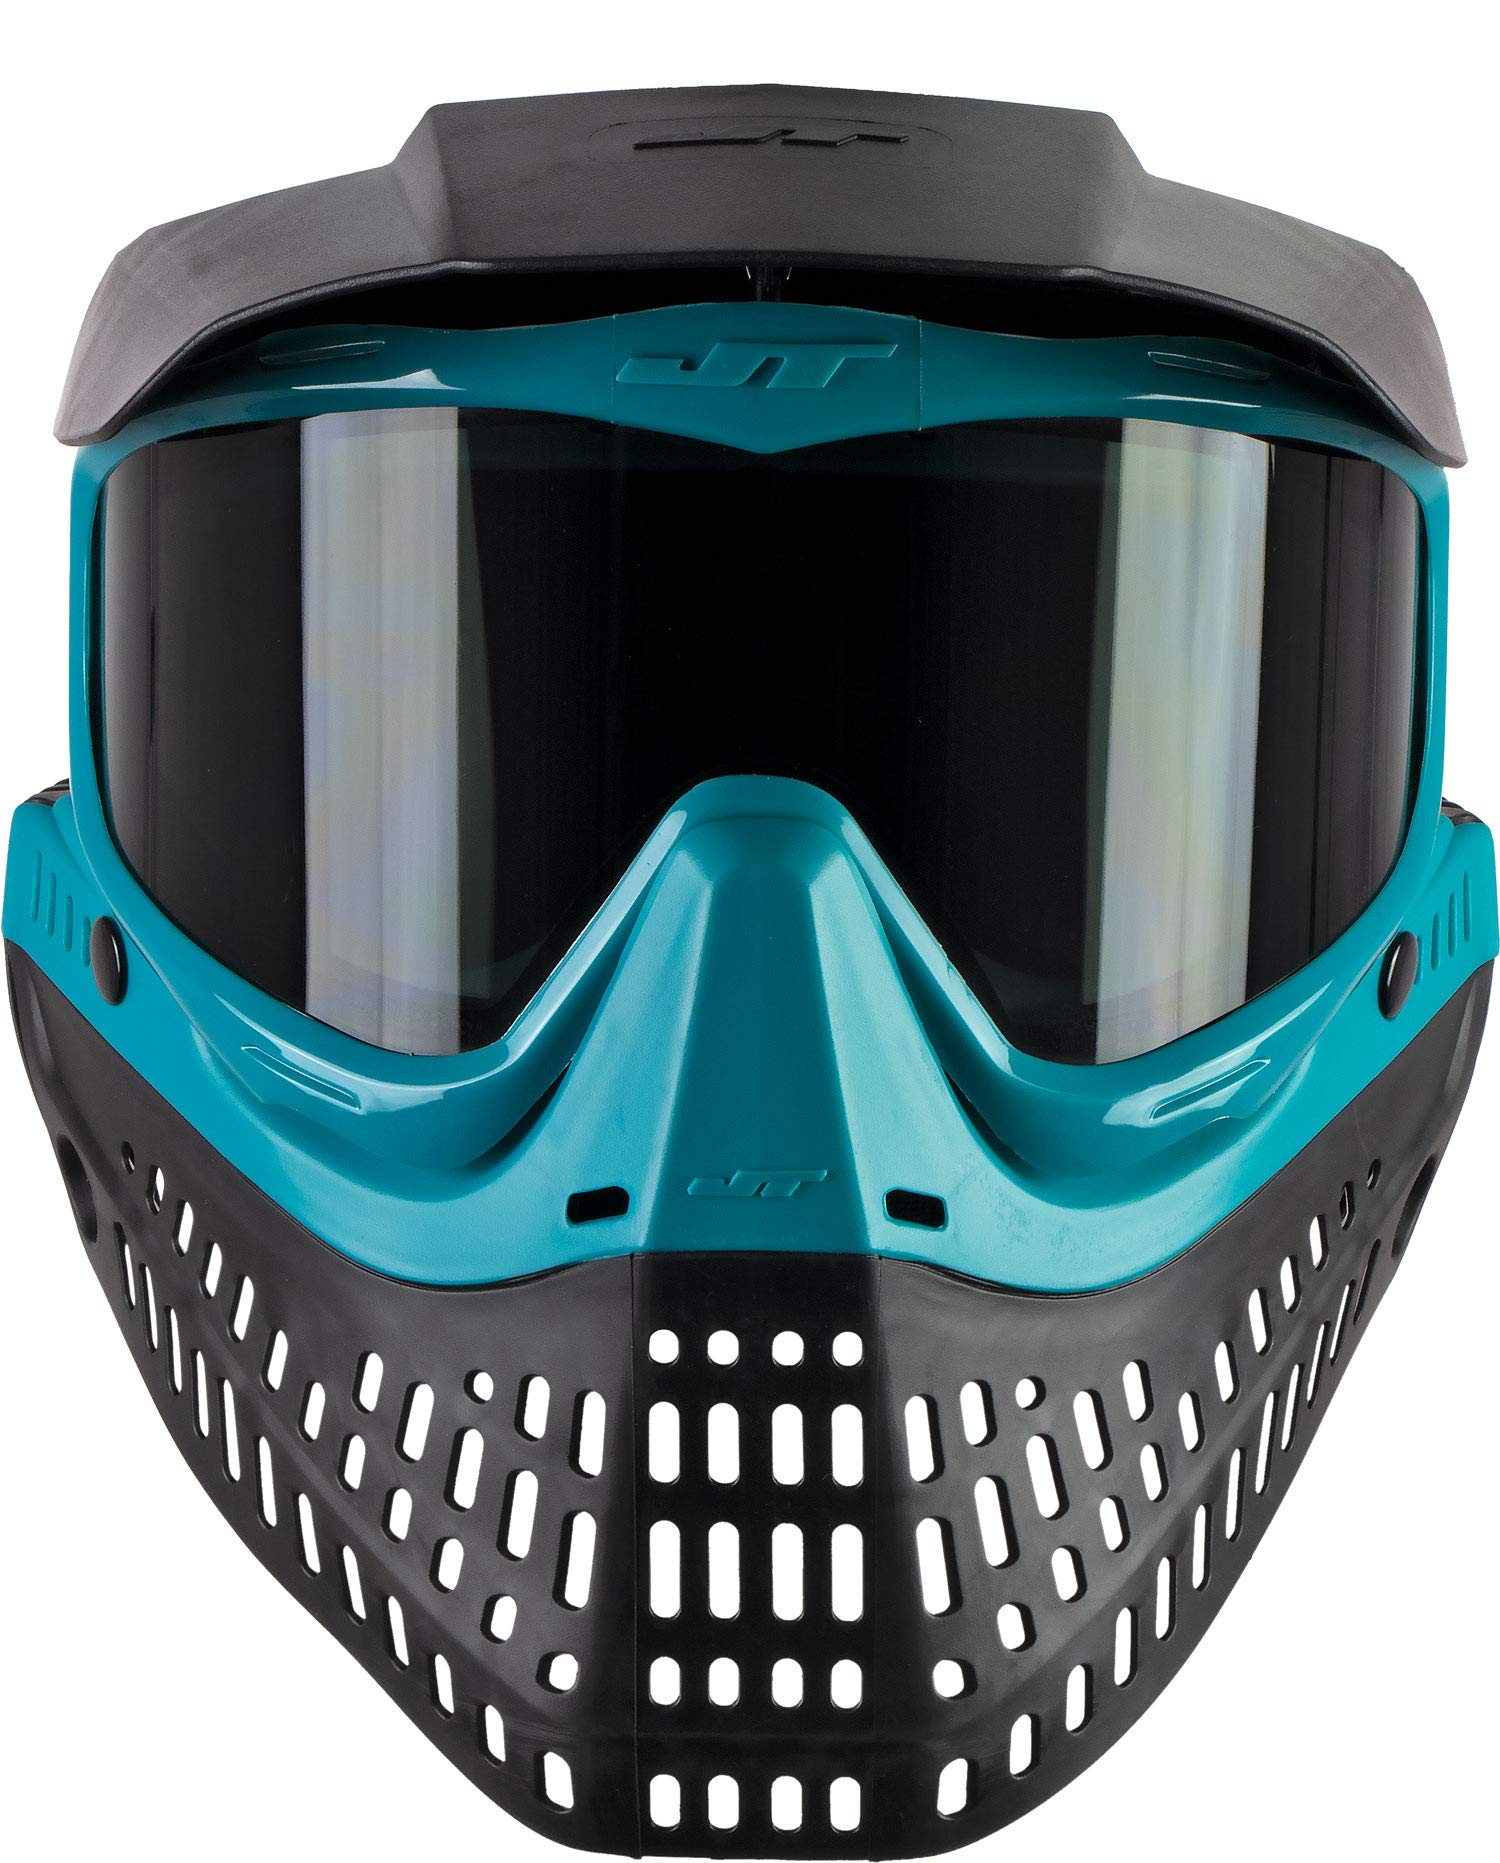 JT Spectra Proflex LE Thermal Goggle (Teal) by JT